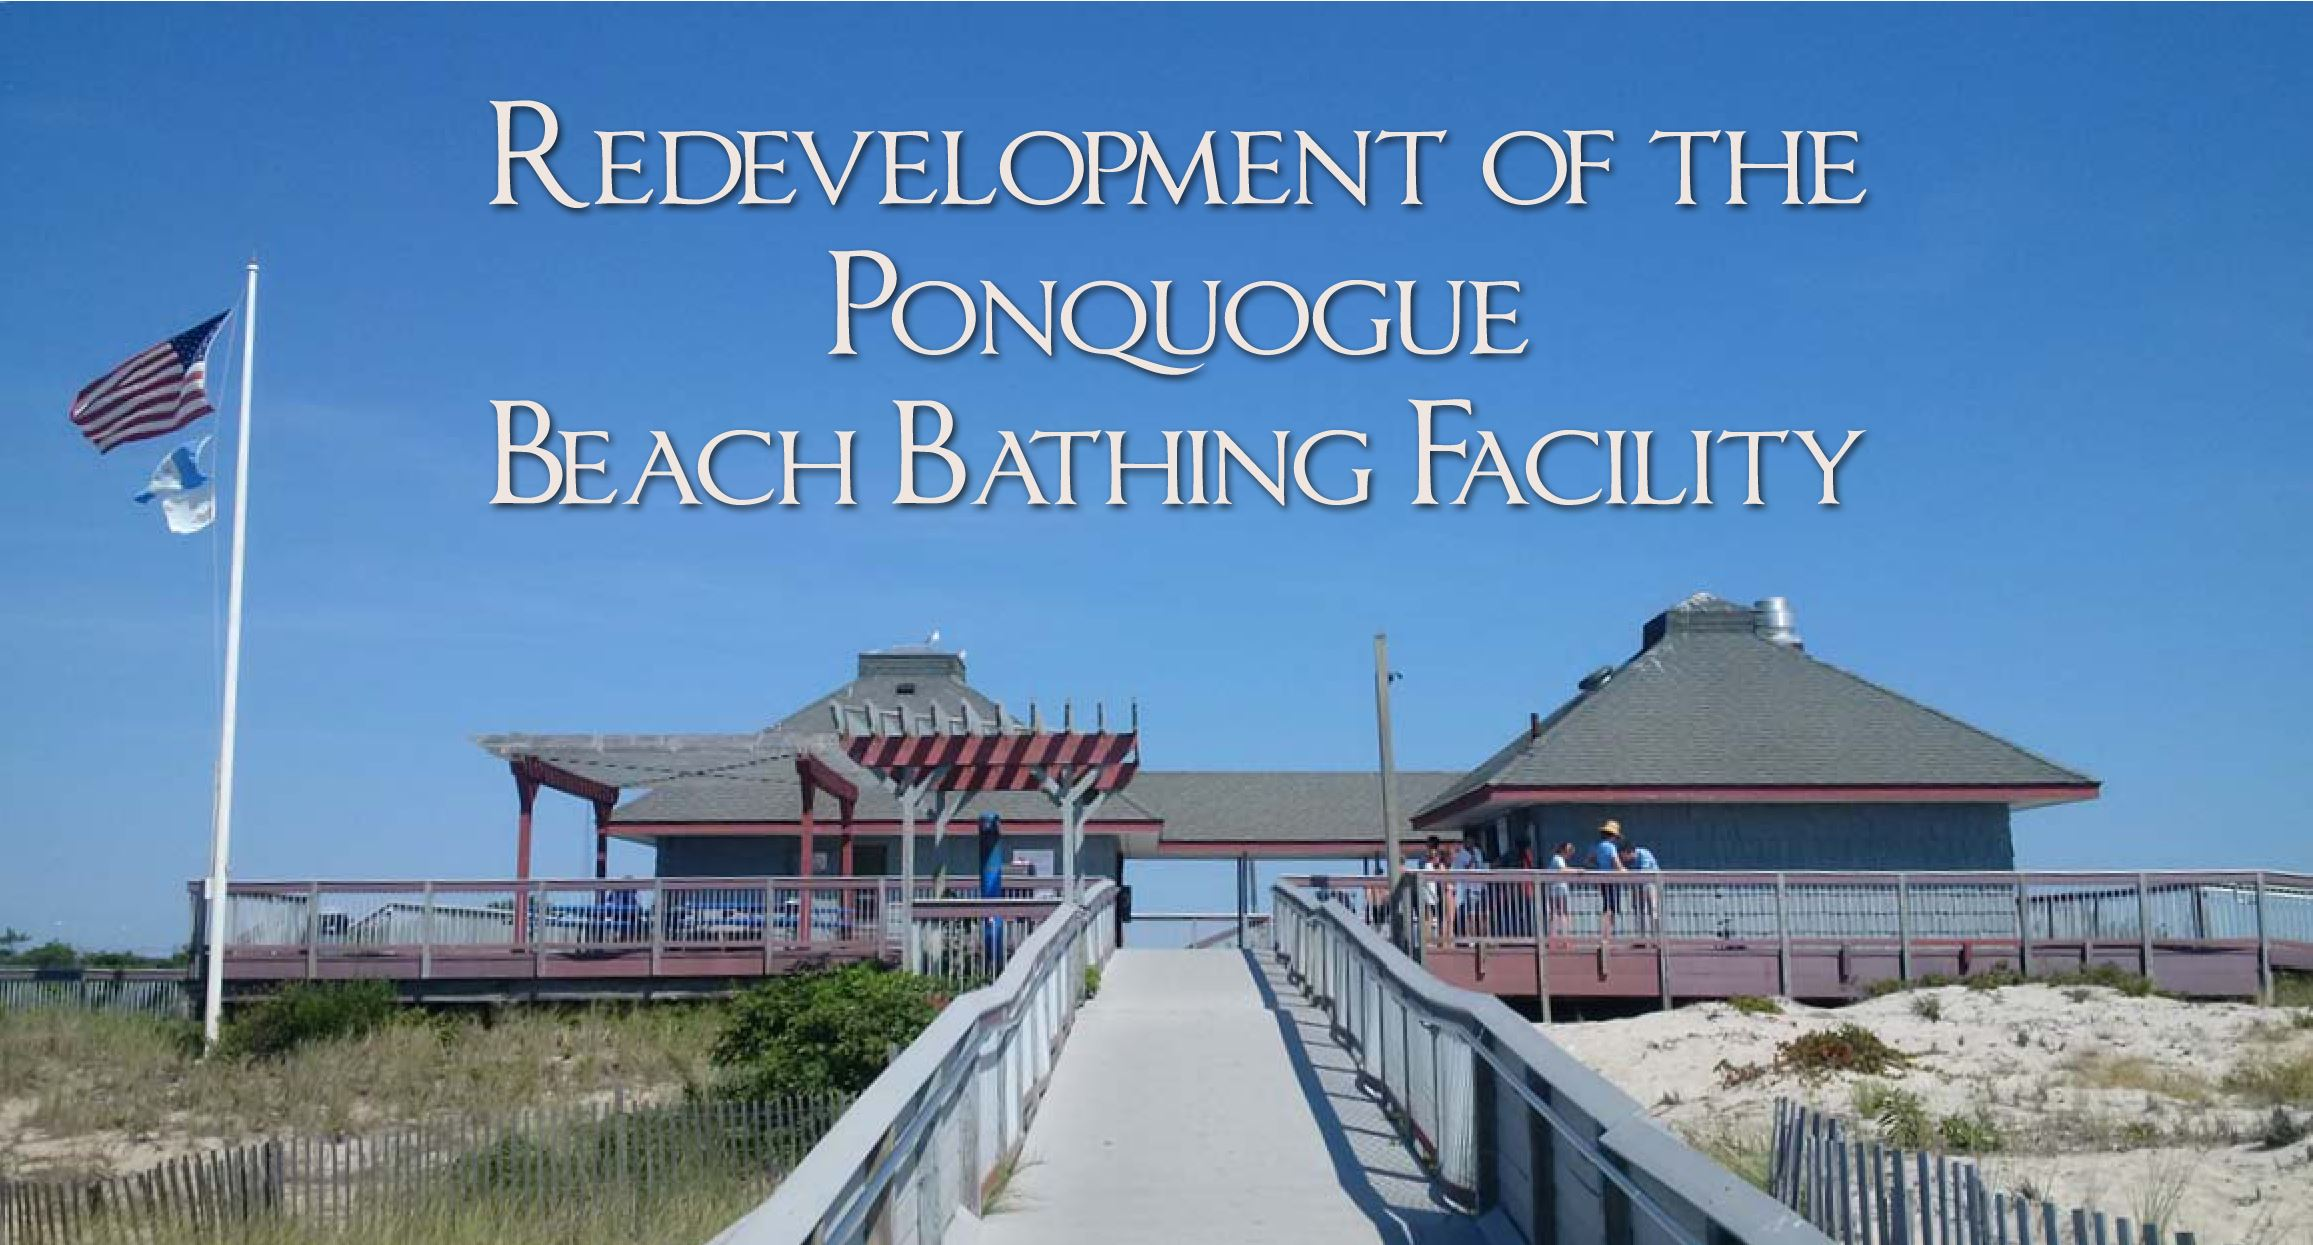 Text of Redevelopment of the Ponquogue Beath Bathing Facility in the sky above the Facility